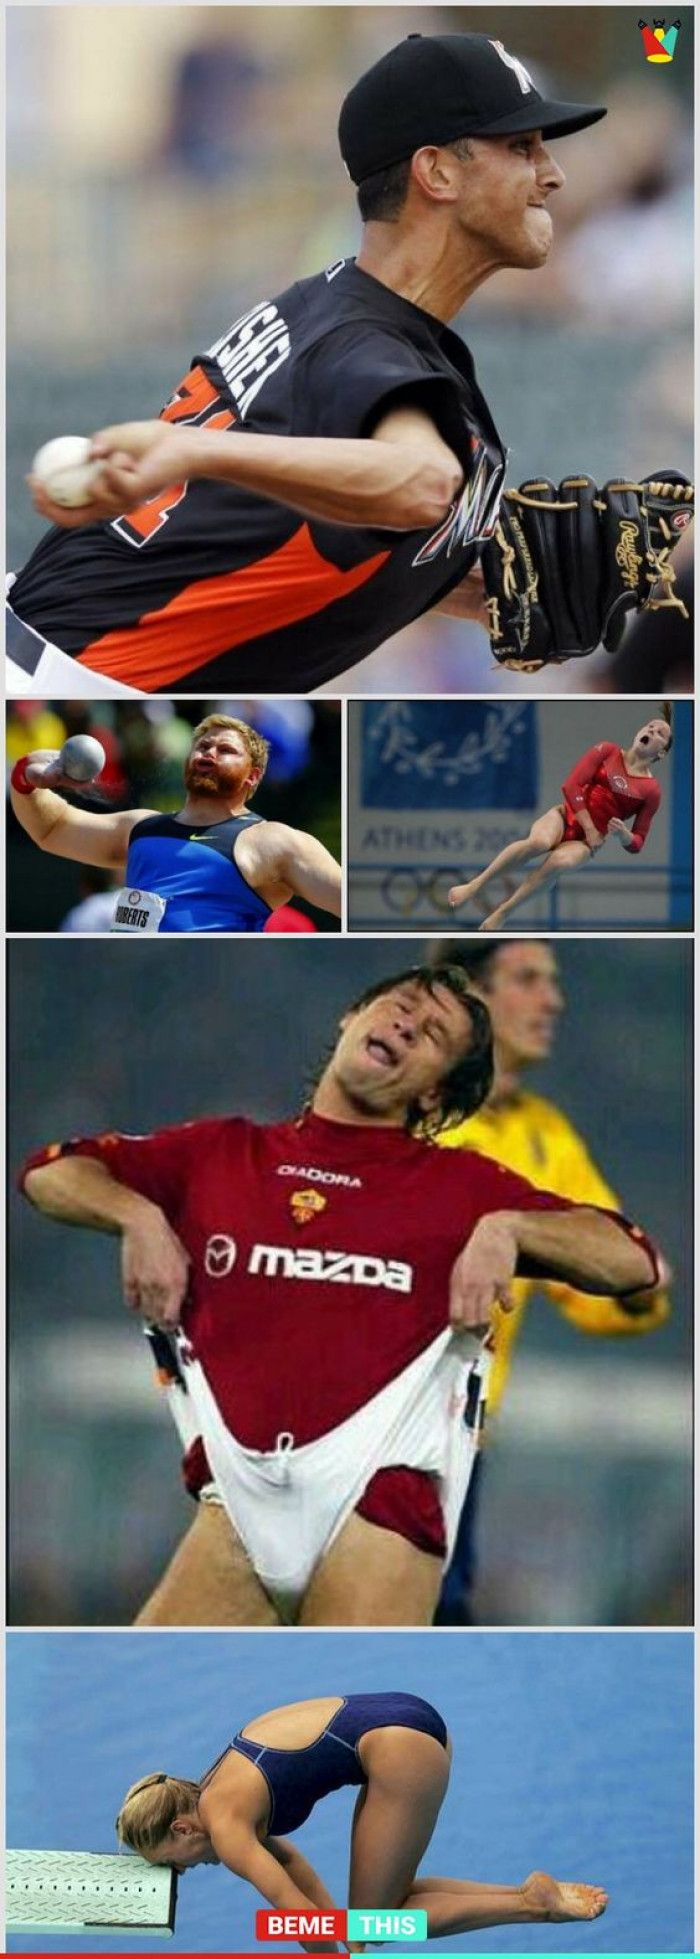 Funny Facial Expressions of Olympic Athletes